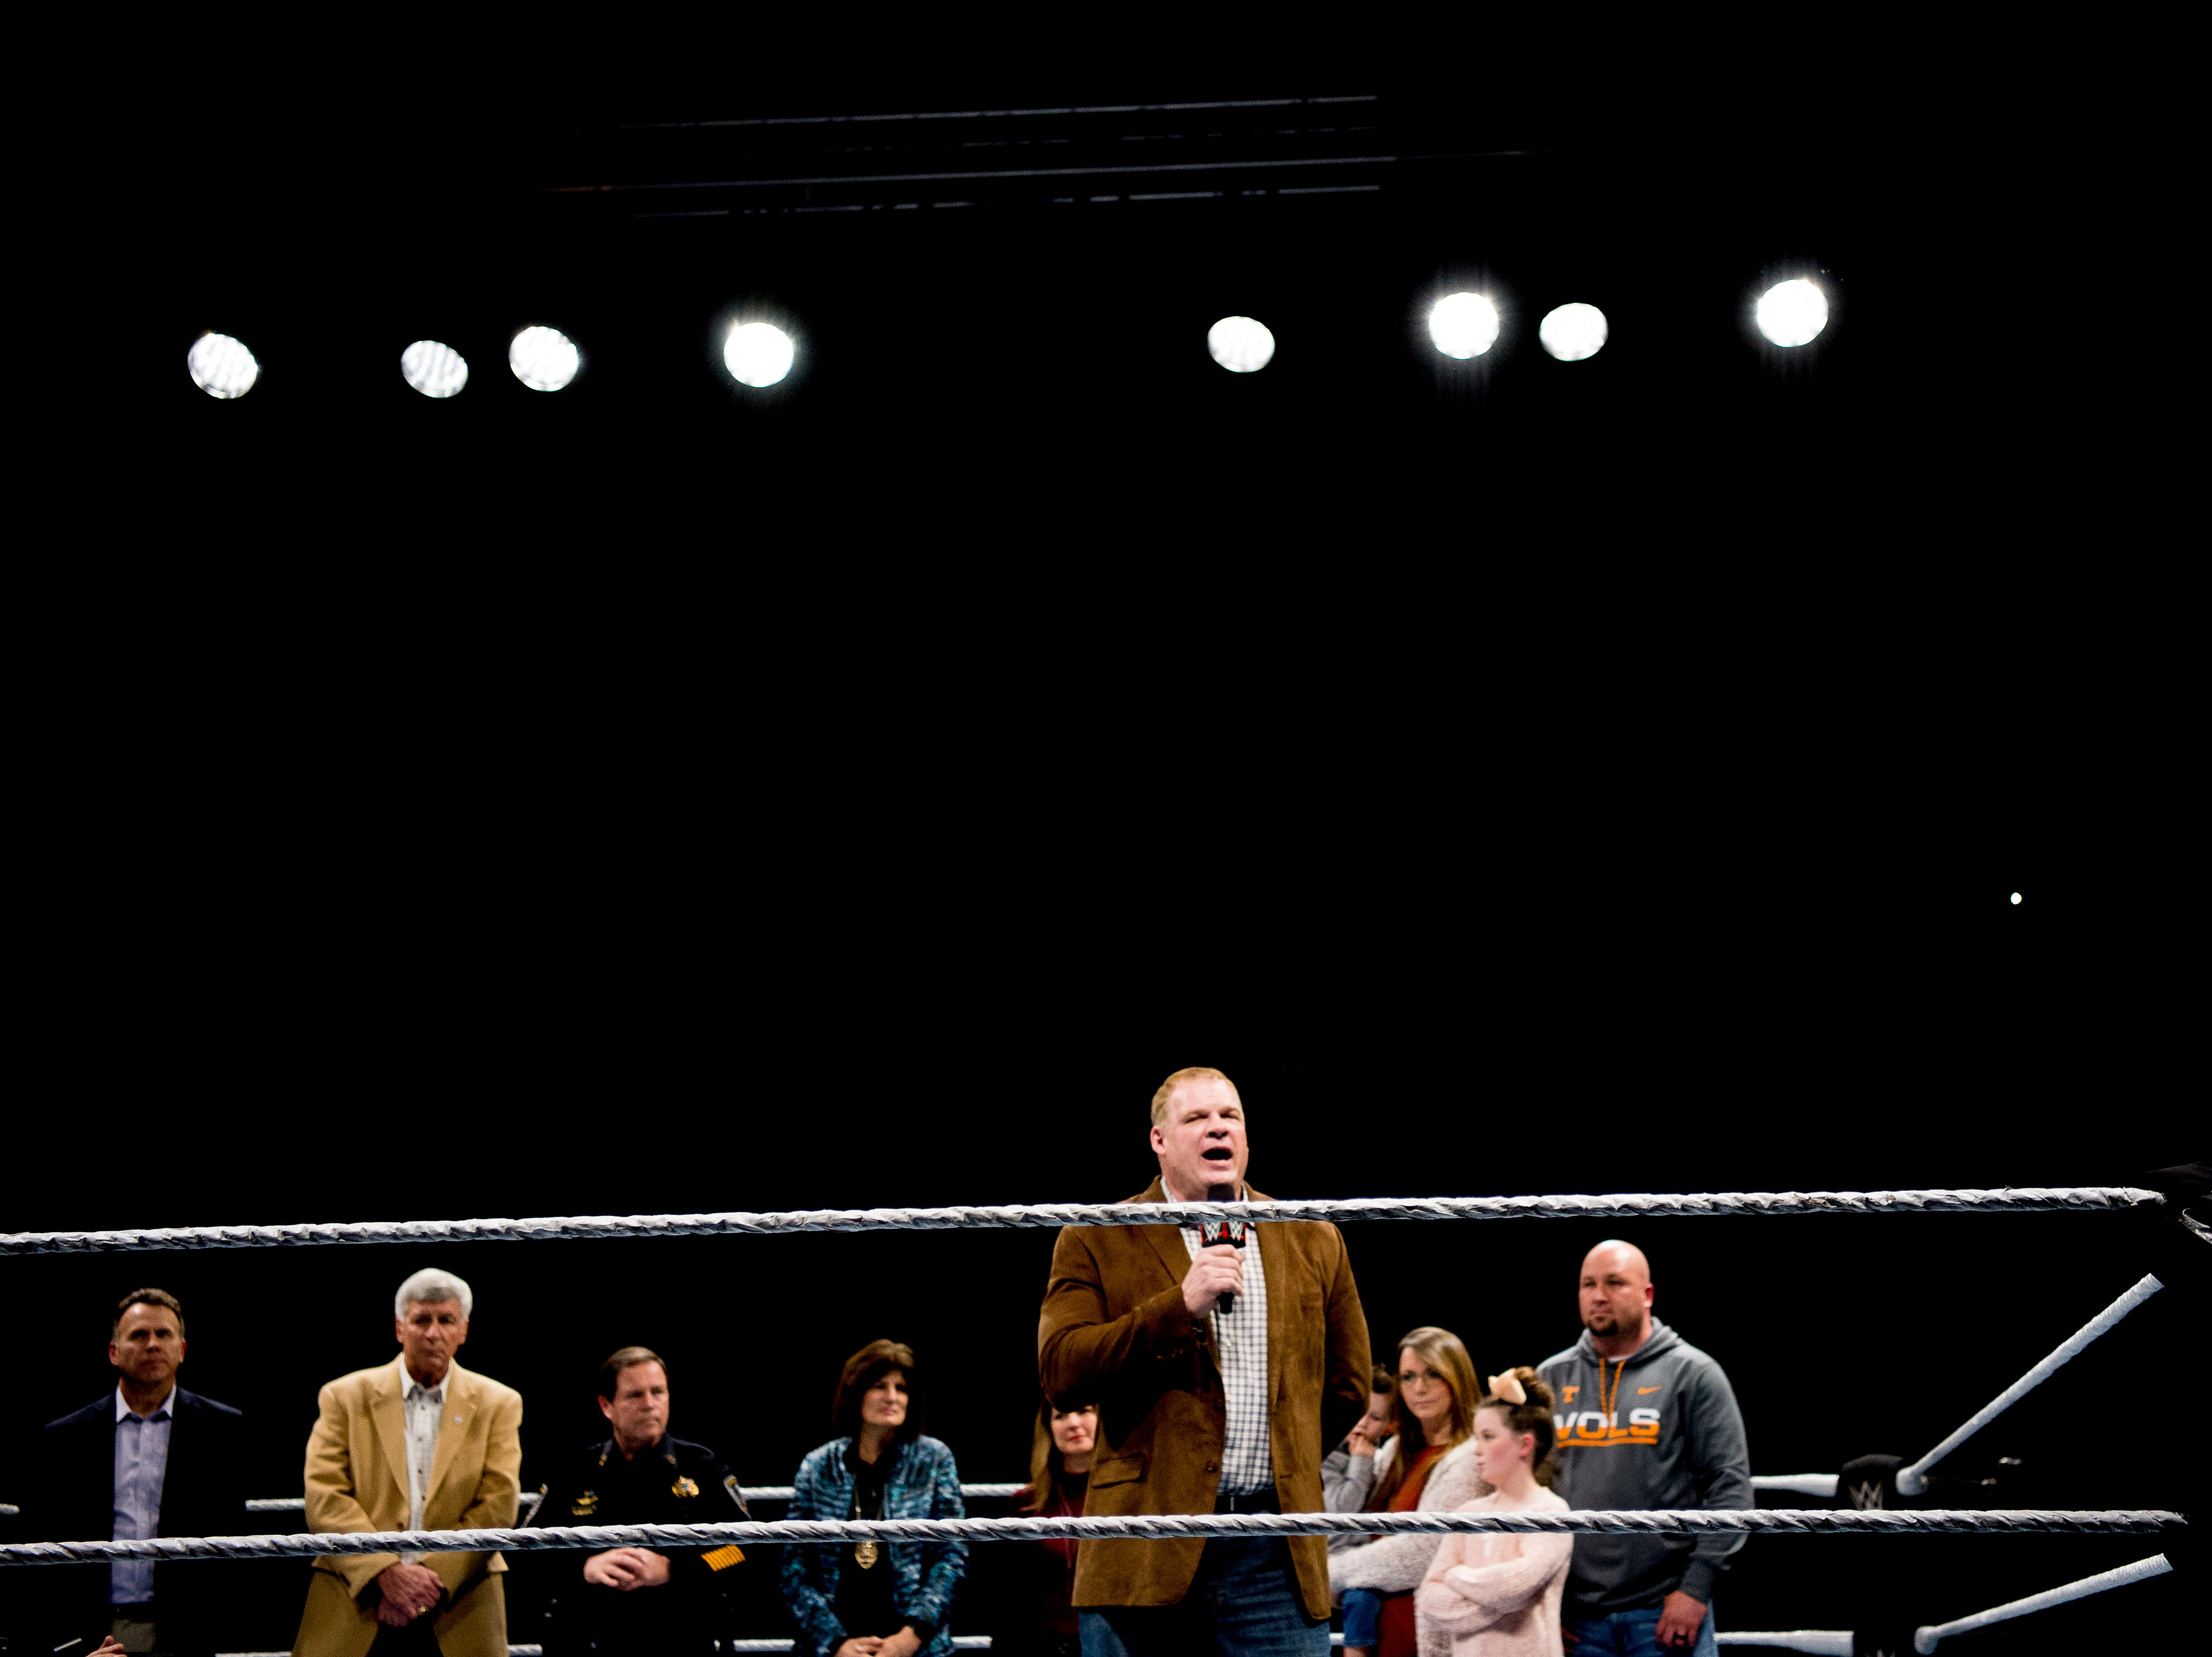 Knox County Mayor Glenn Jacobs, aka Kane, speaks during a check presentation during a WWE Live performance at the Knoxville Civic Coliseum in Knoxville, Tennessee on Saturday, January 12, 2019. *KNOXVILLE NEWS SENTINEL USE ONLY*